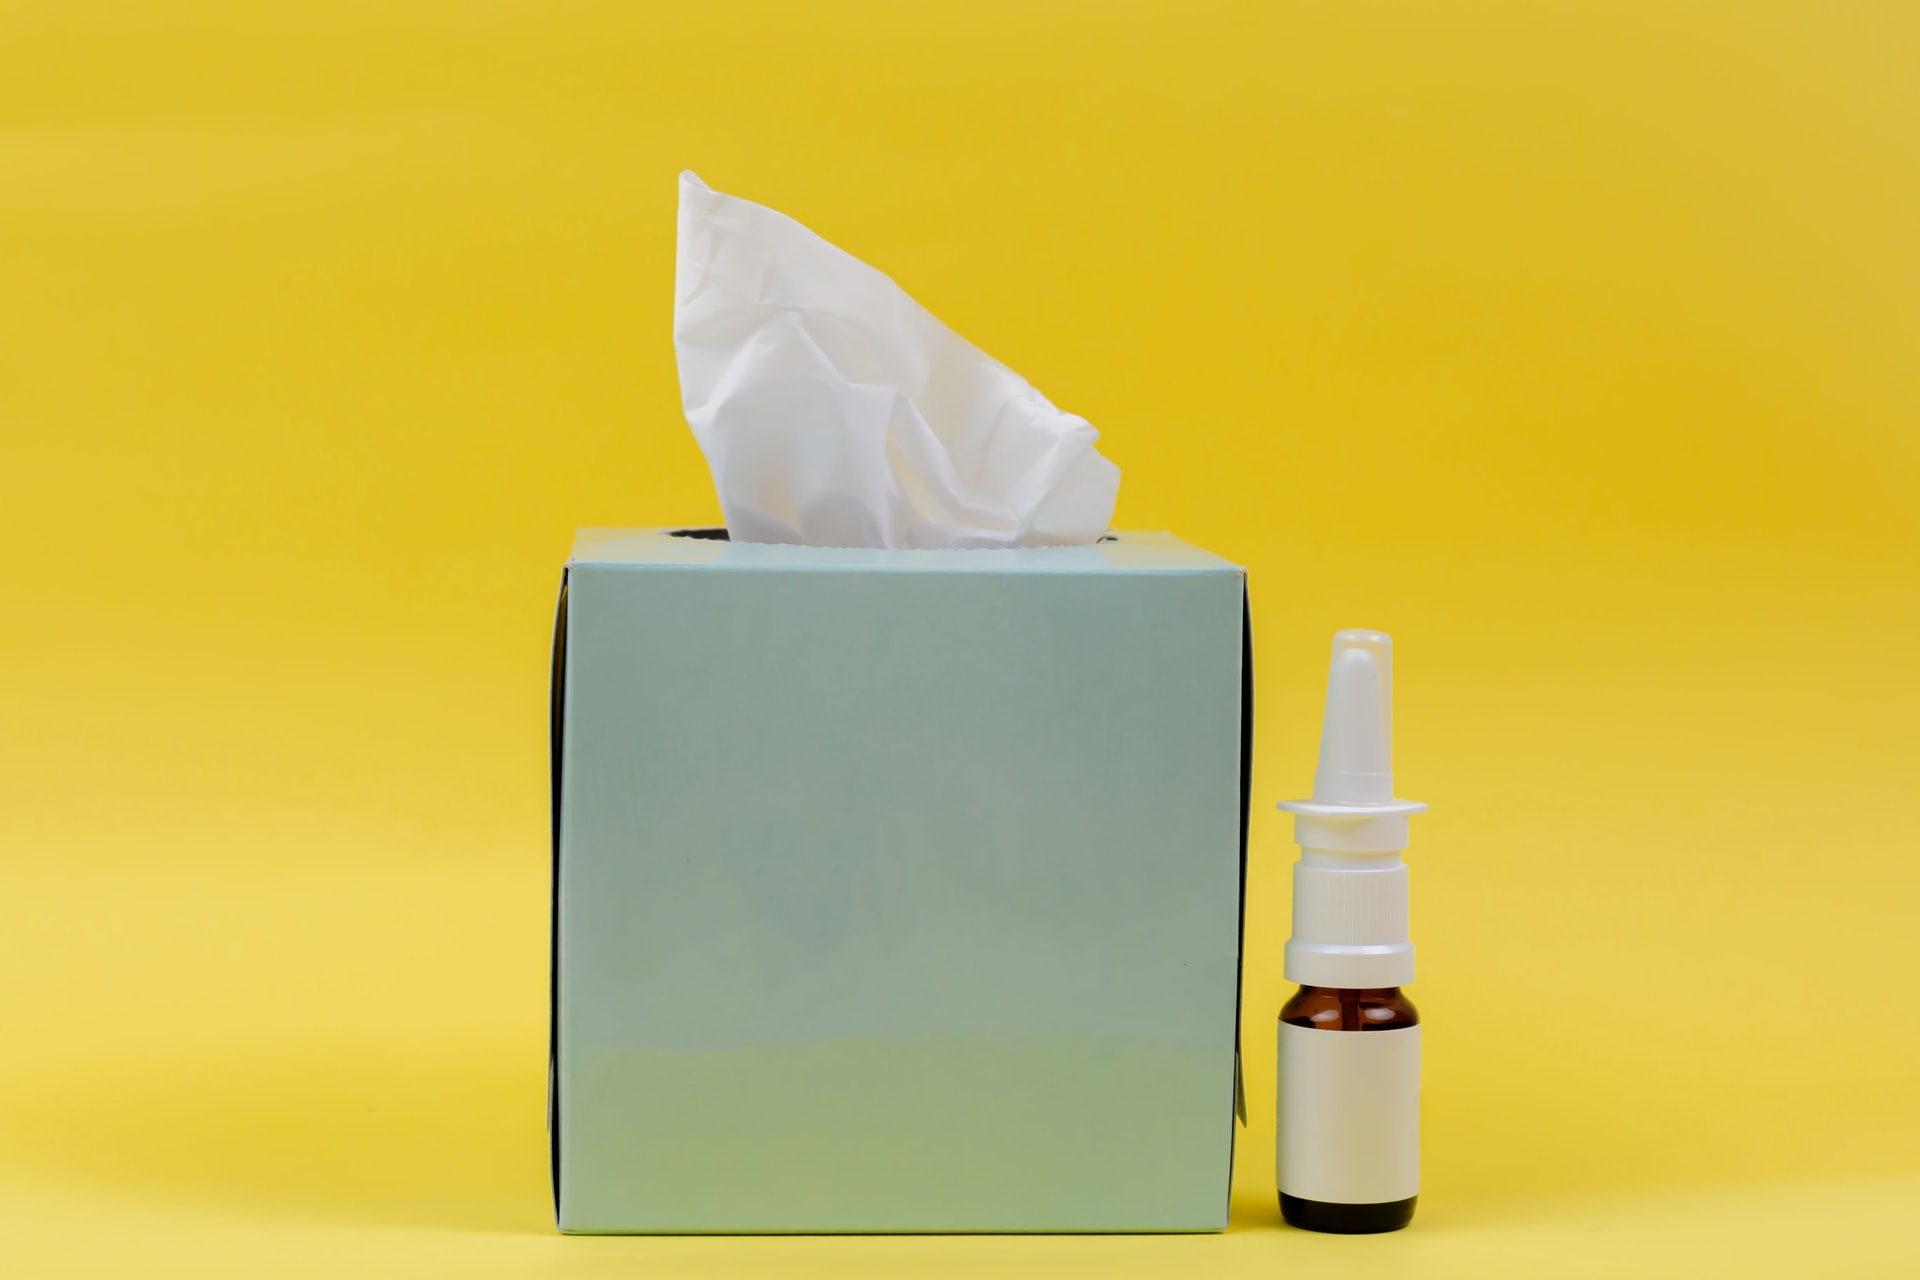 image of tissue box and allergy medication